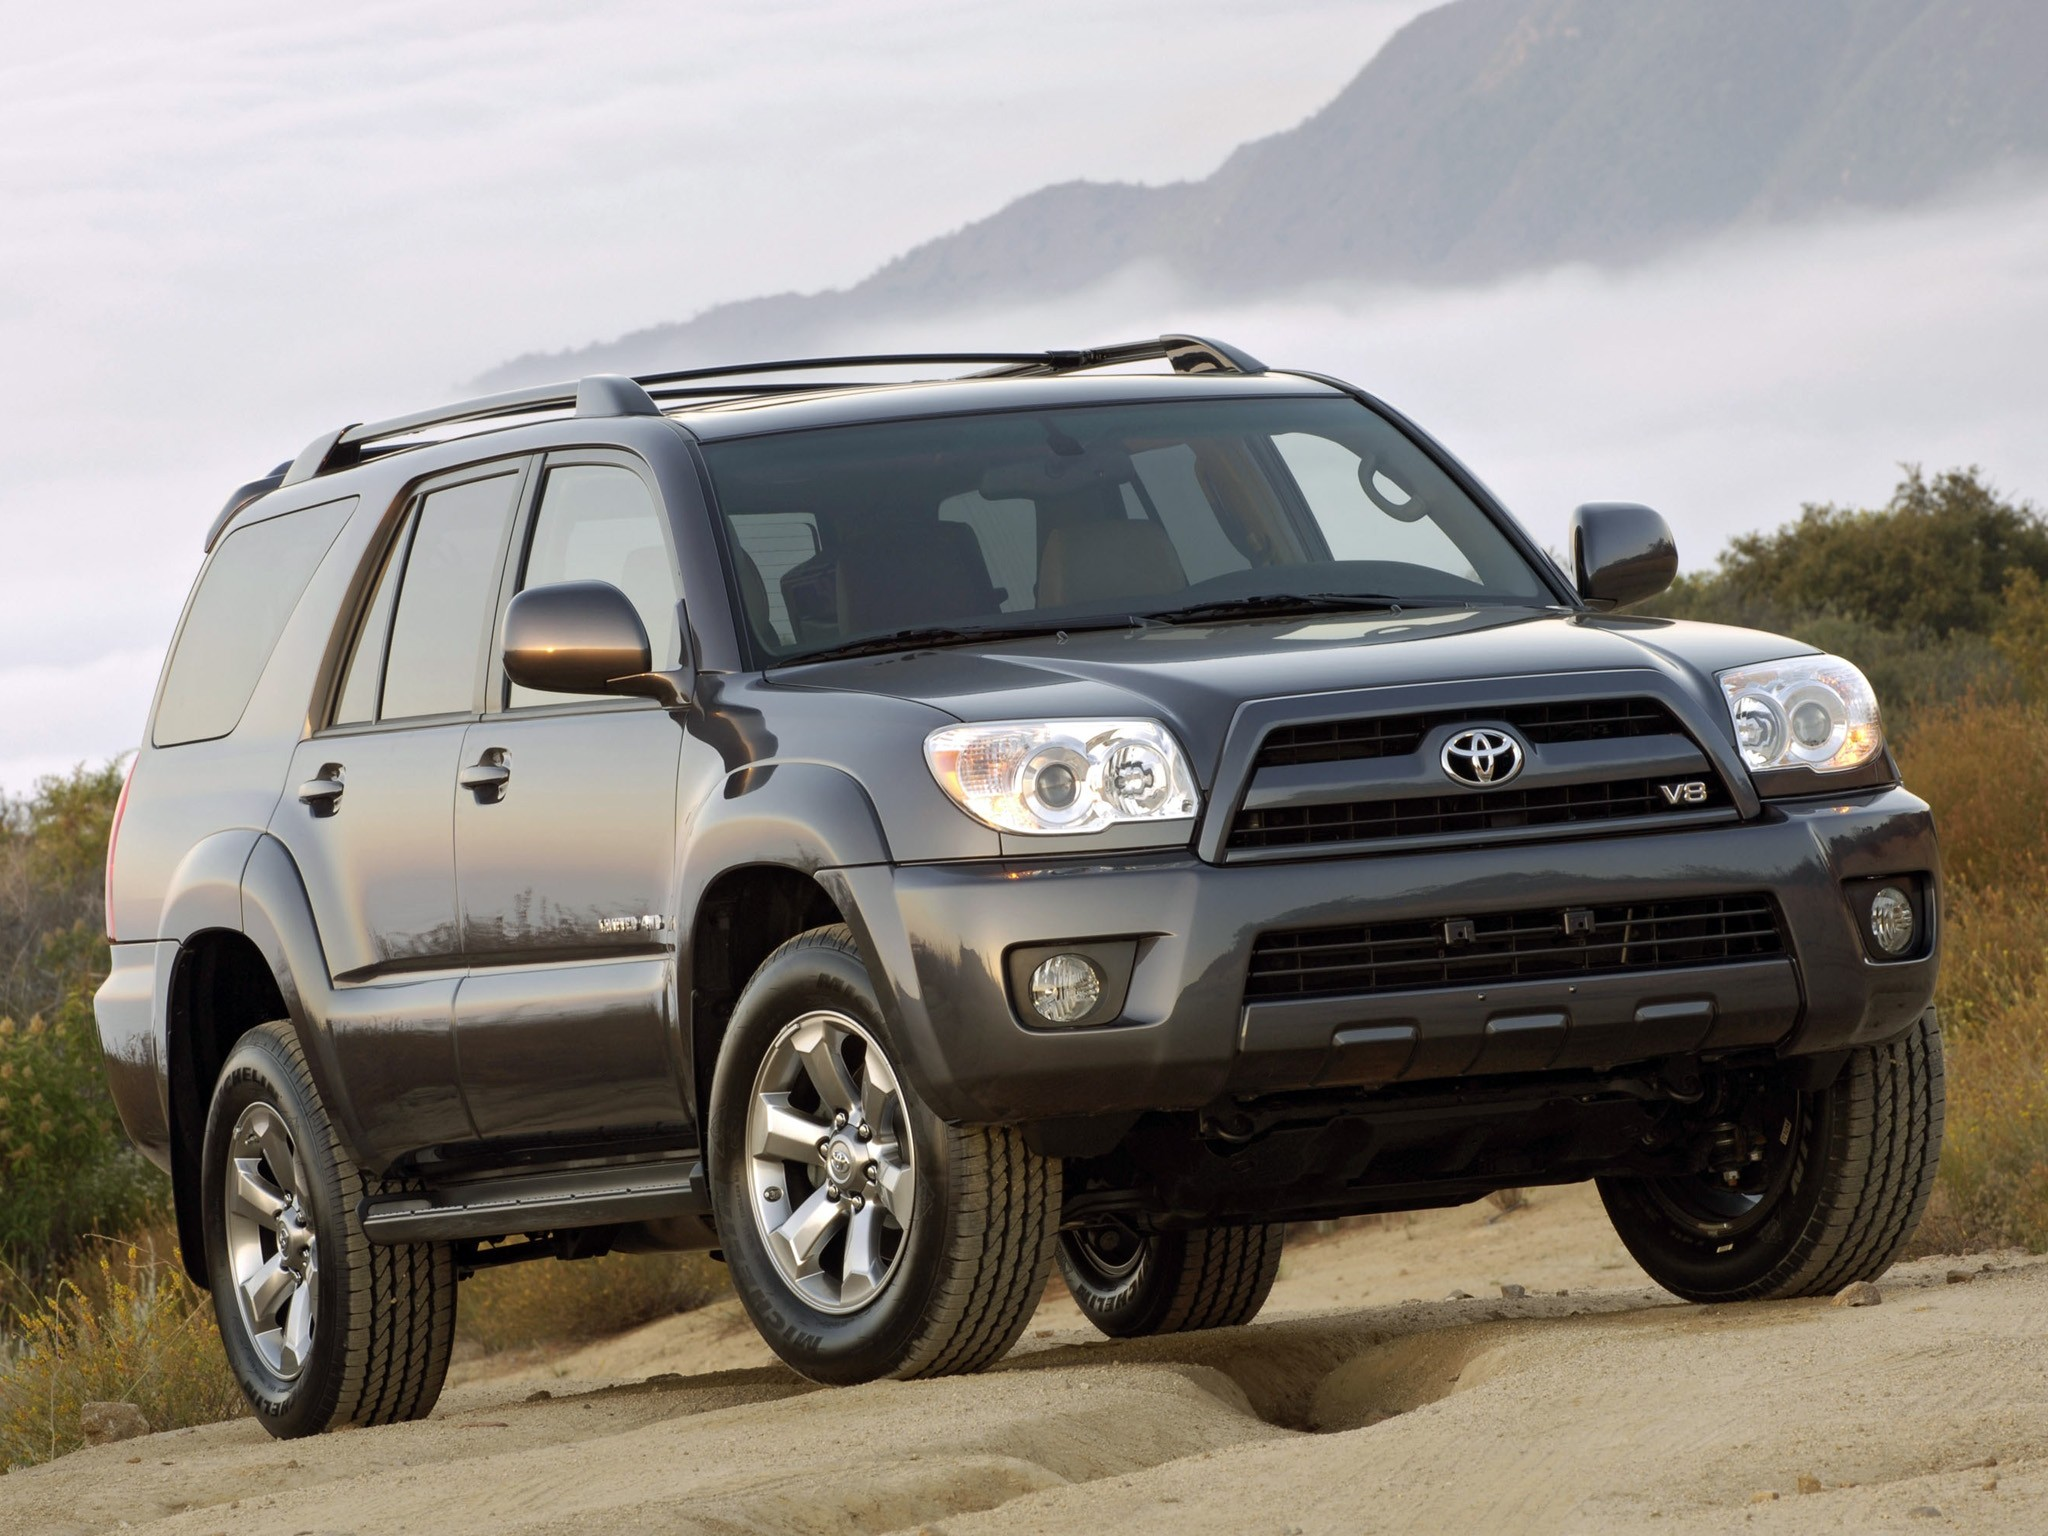 2012 Ford Escape Black Rims >> TOYOTA 4Runner specs - 2003, 2004, 2005, 2006, 2007, 2008, 2009 - autoevolution